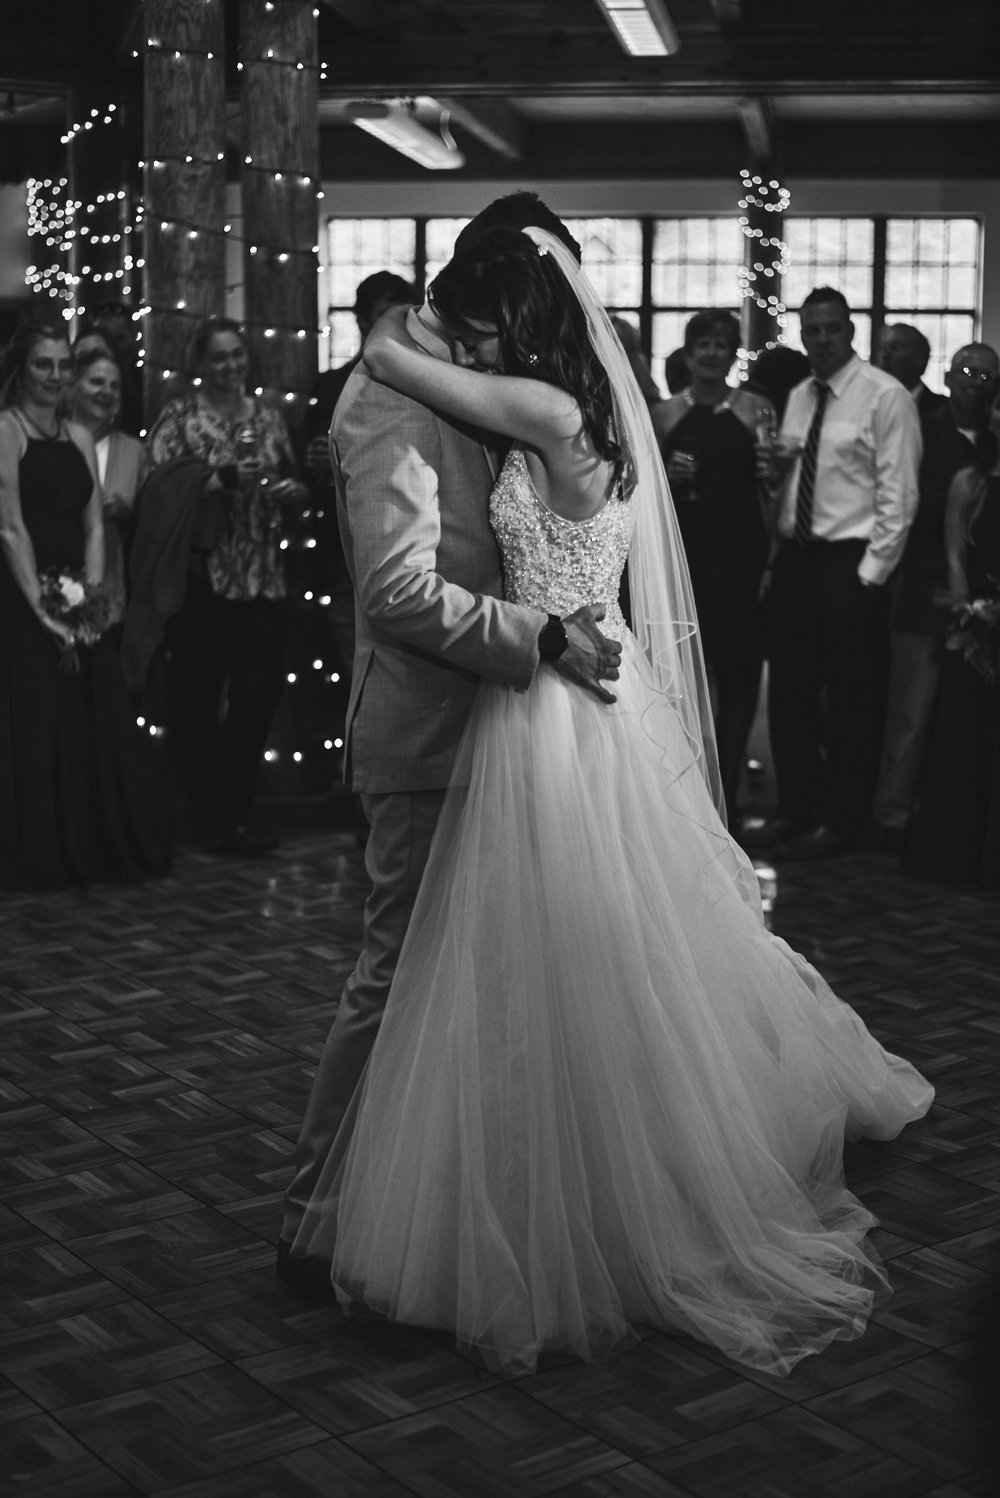 Wedding Photography by Cate Bligh | A wedding reception in the Sunapee Lodge in Newbury, NH